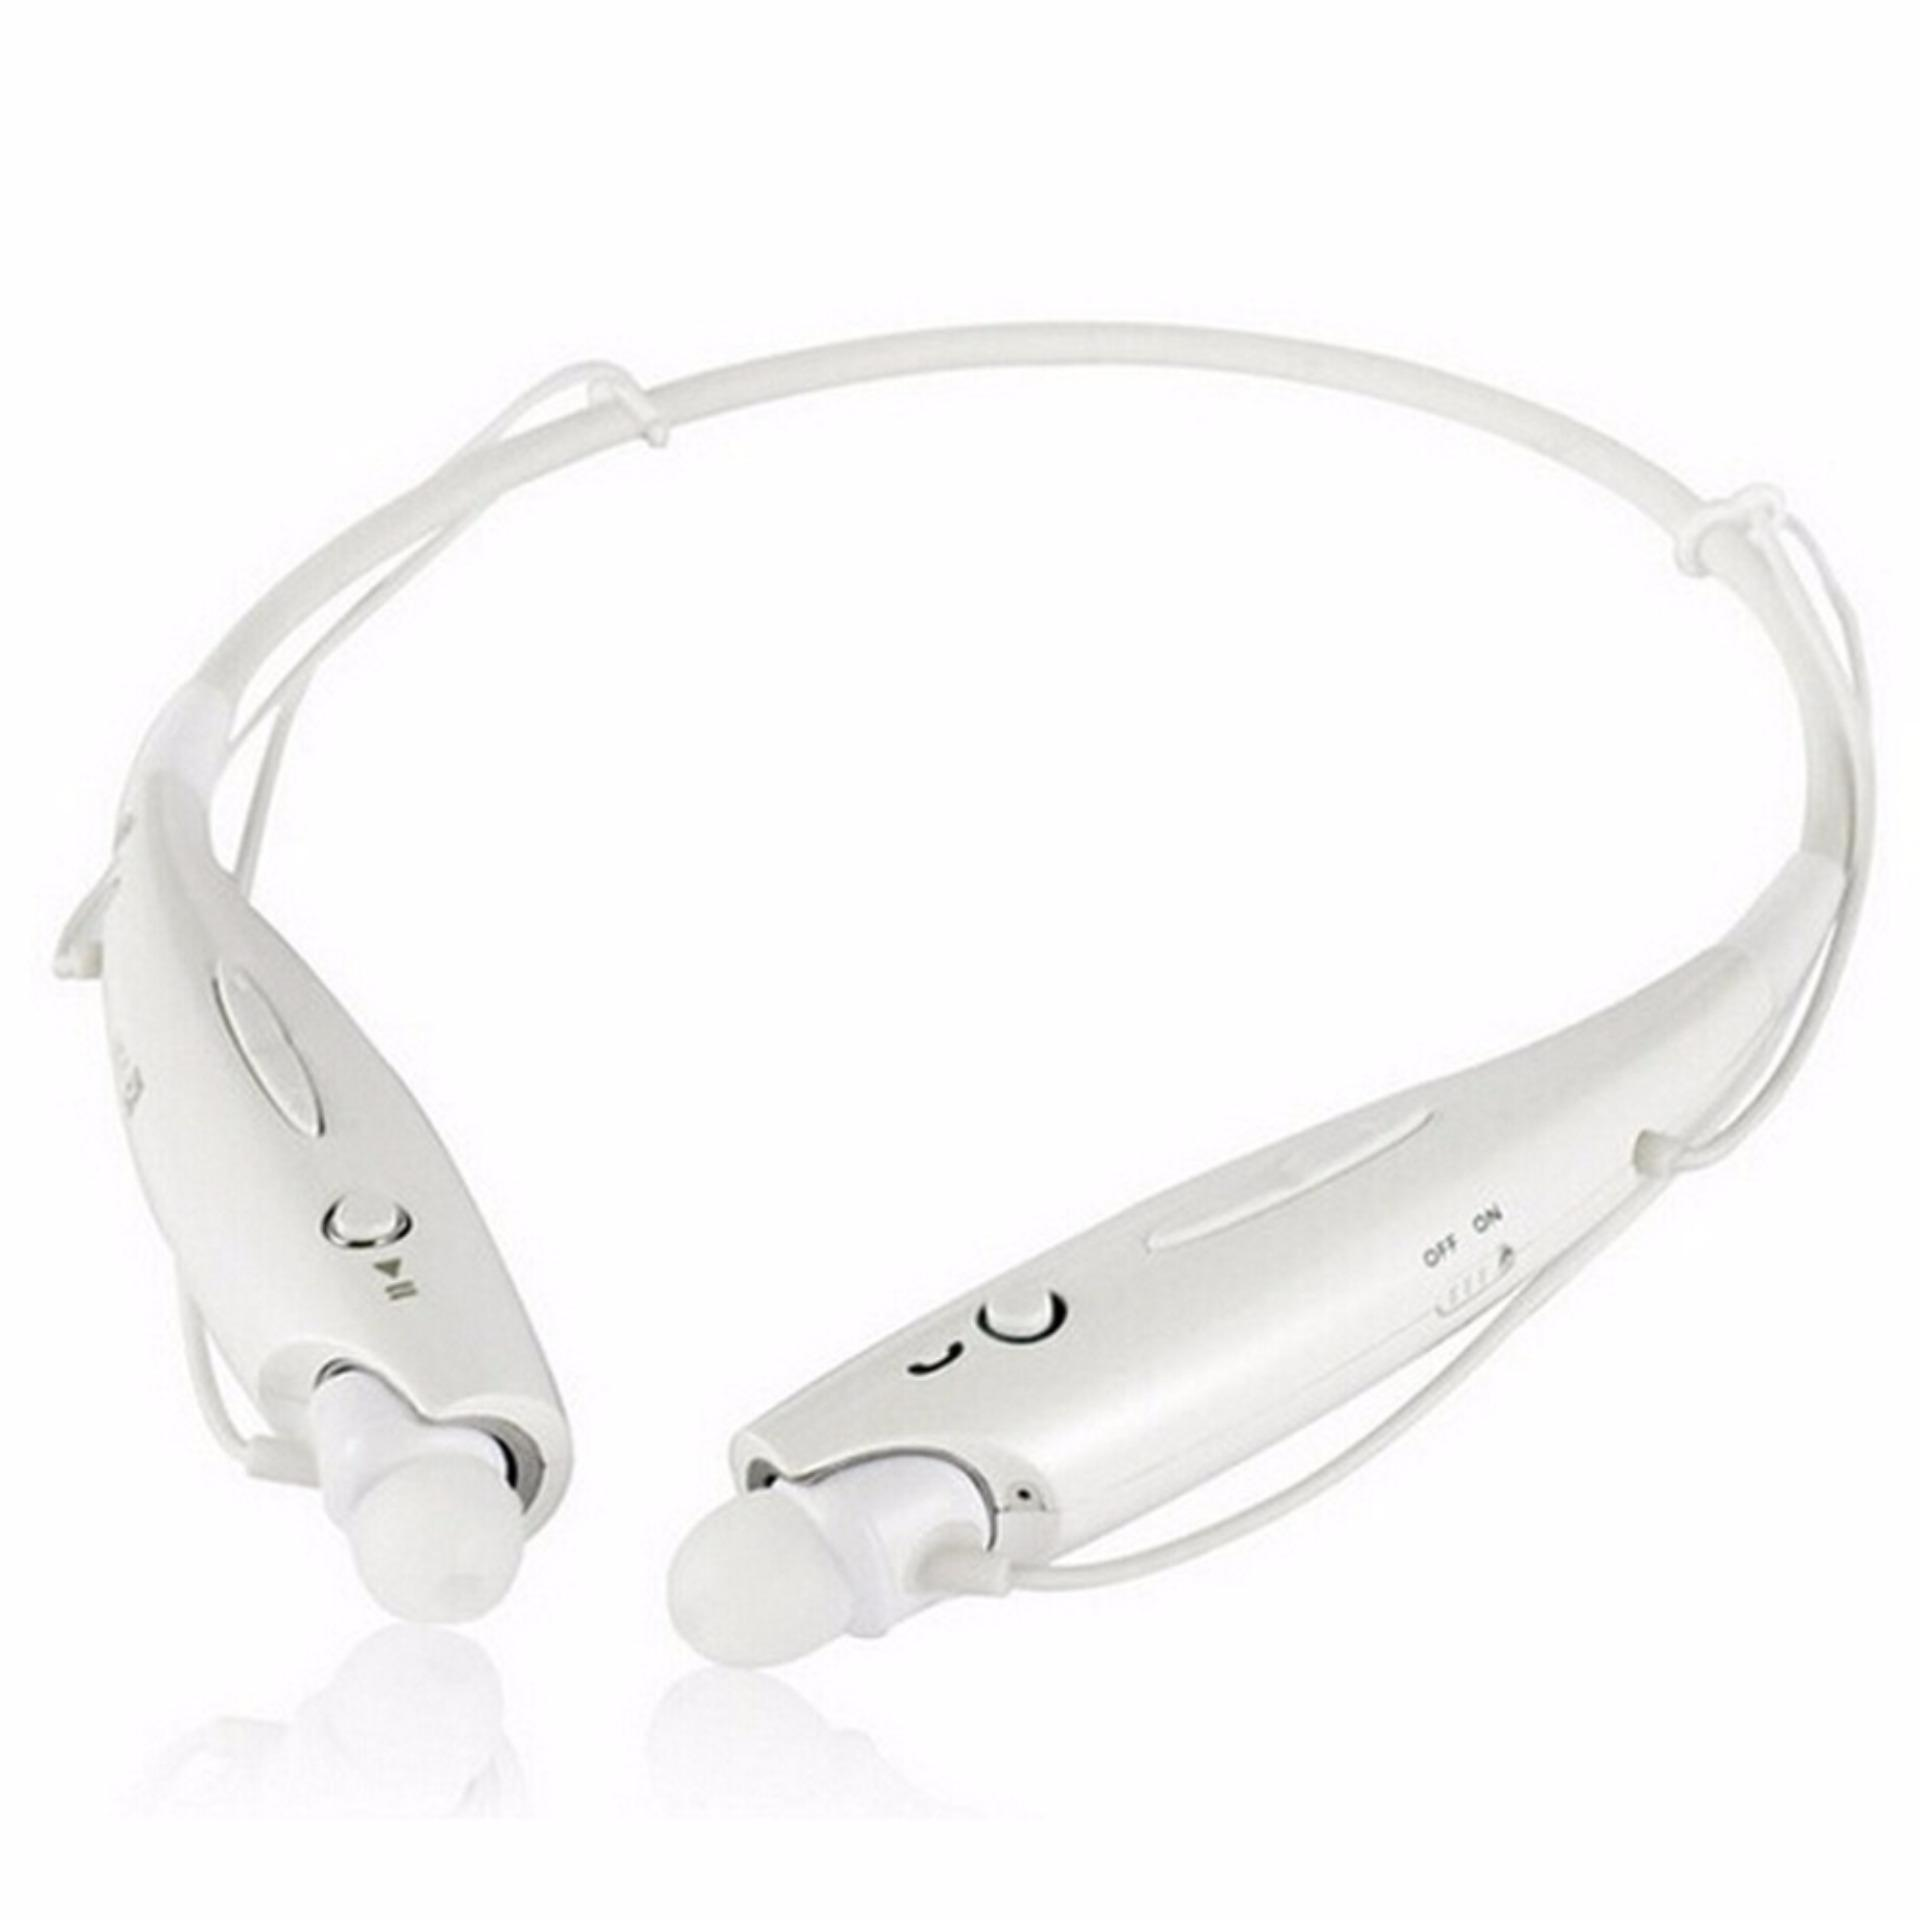 Jual Beli Samsung Bluetooth Headset Two Channel Mp3 Music Headphone Hbs 730 Baru Jawa Tengah